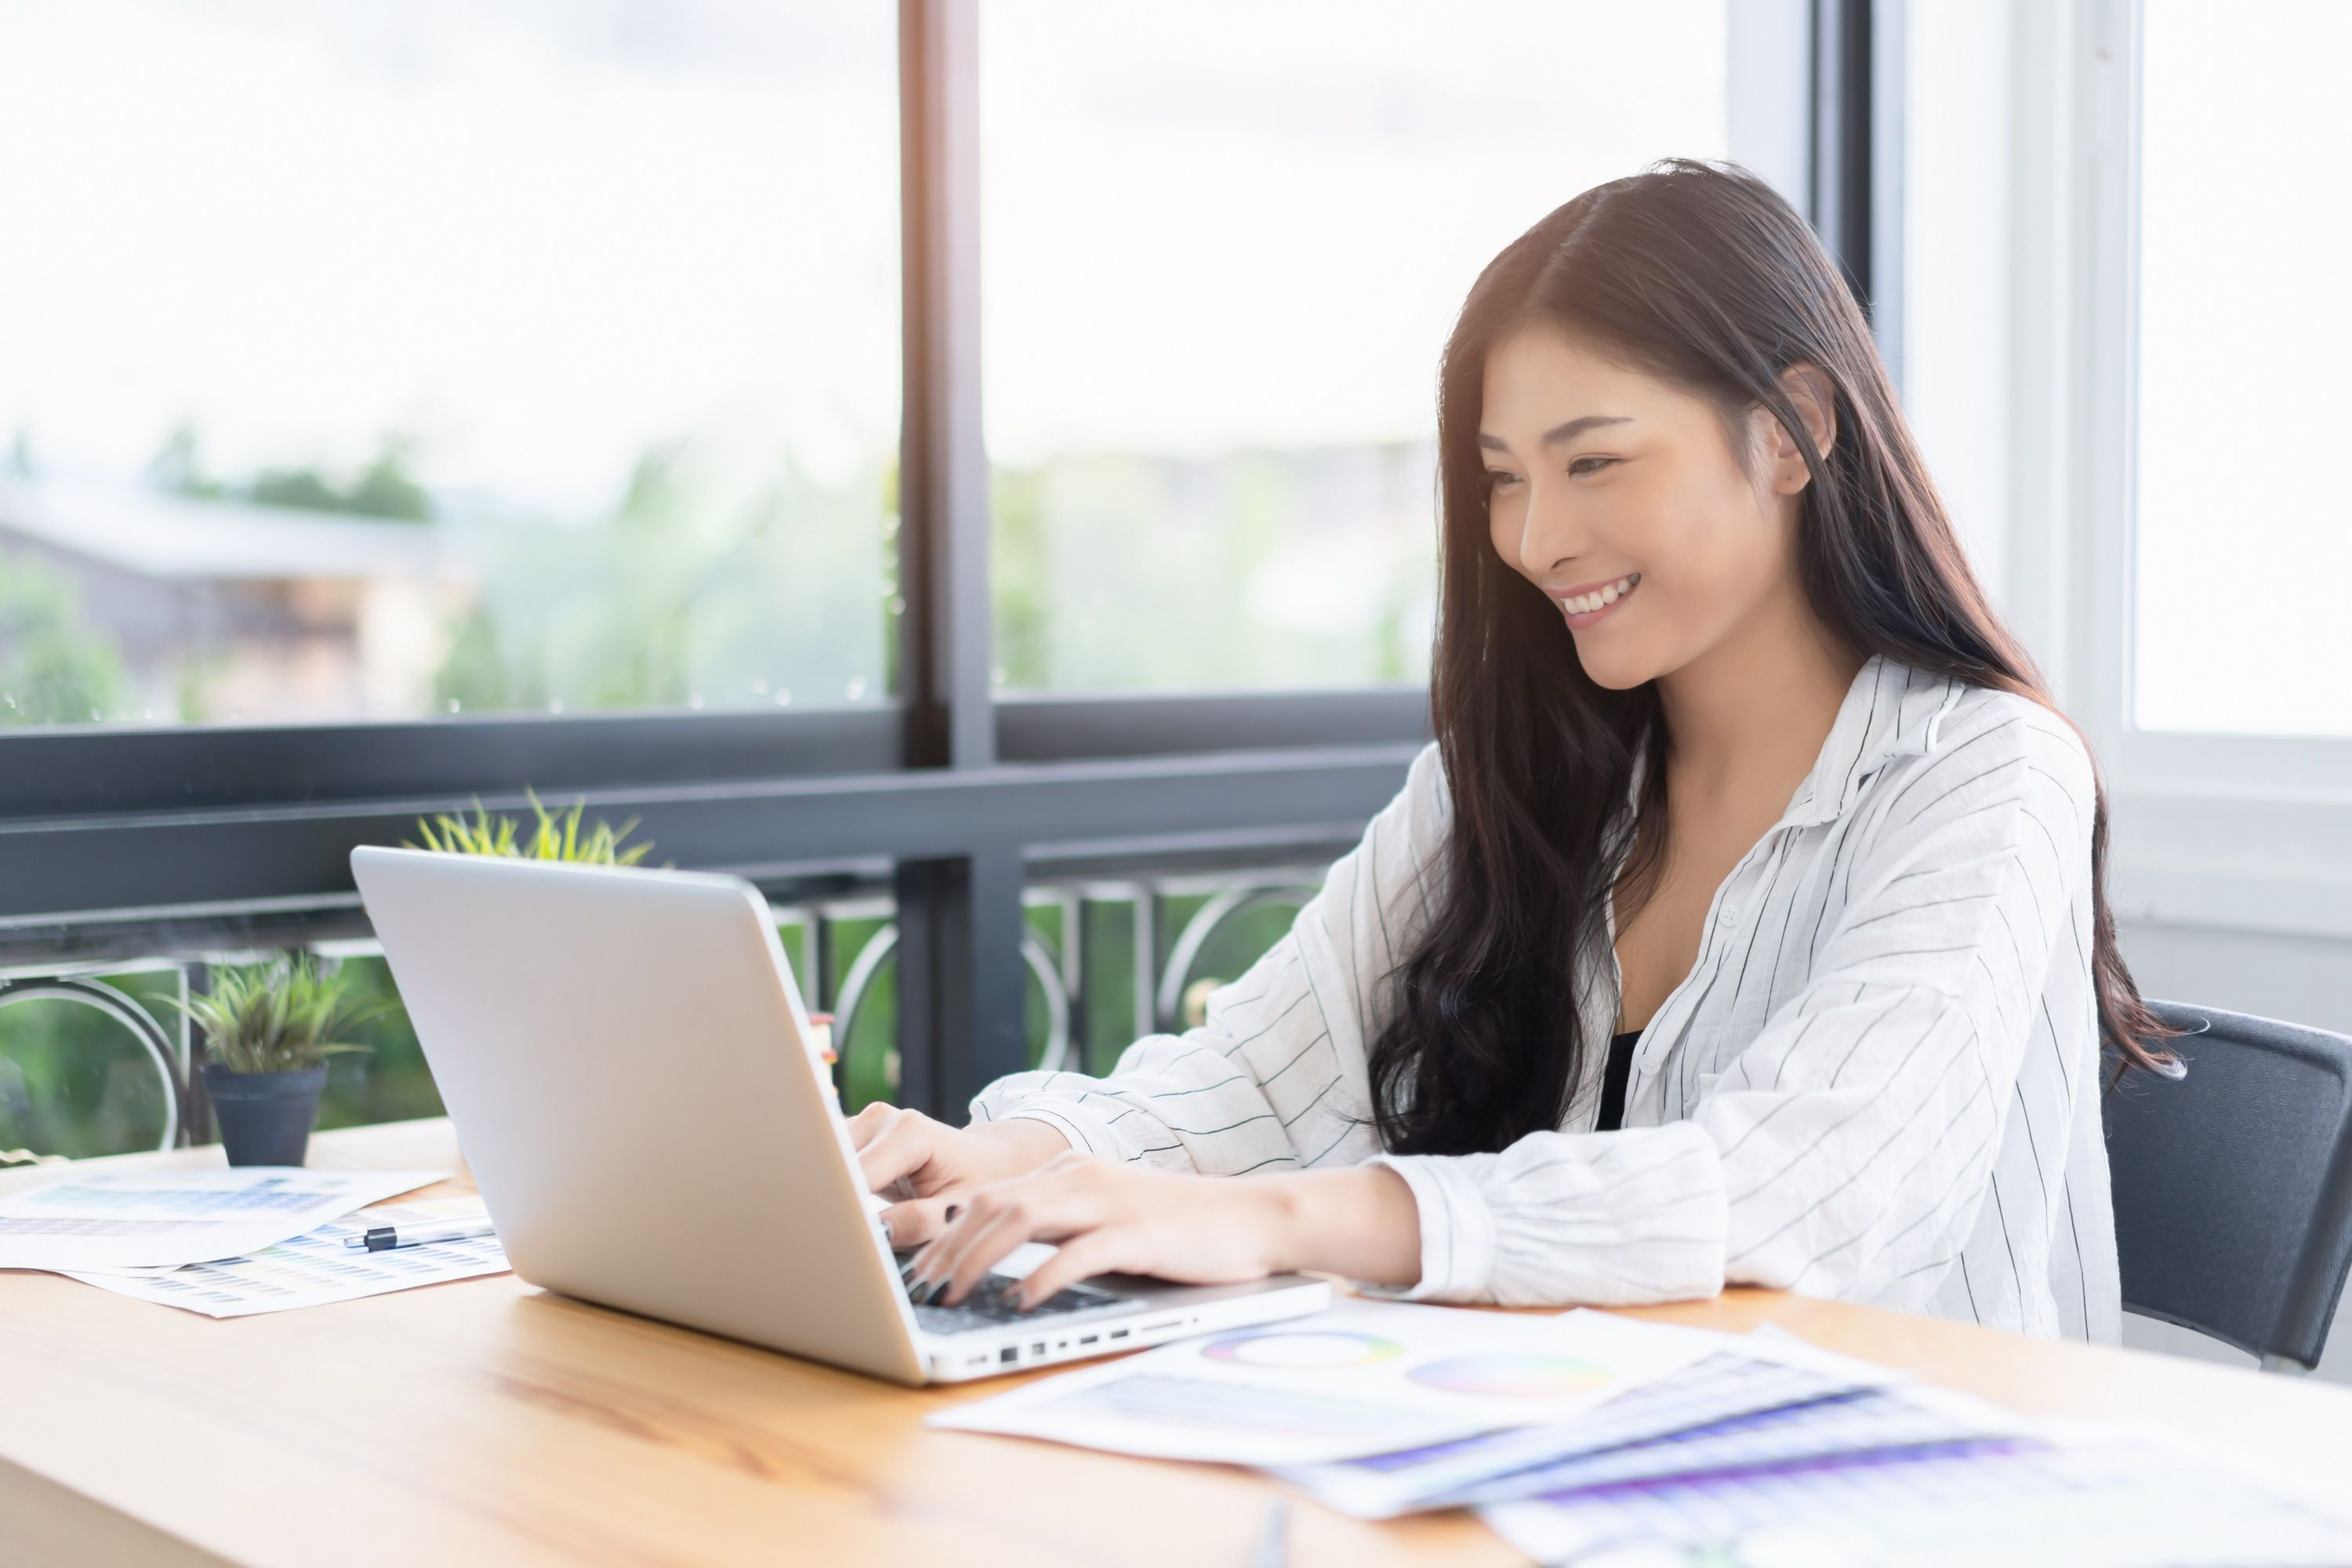 Diverse business woman smiling, sitting at a desk and typing on a laptop